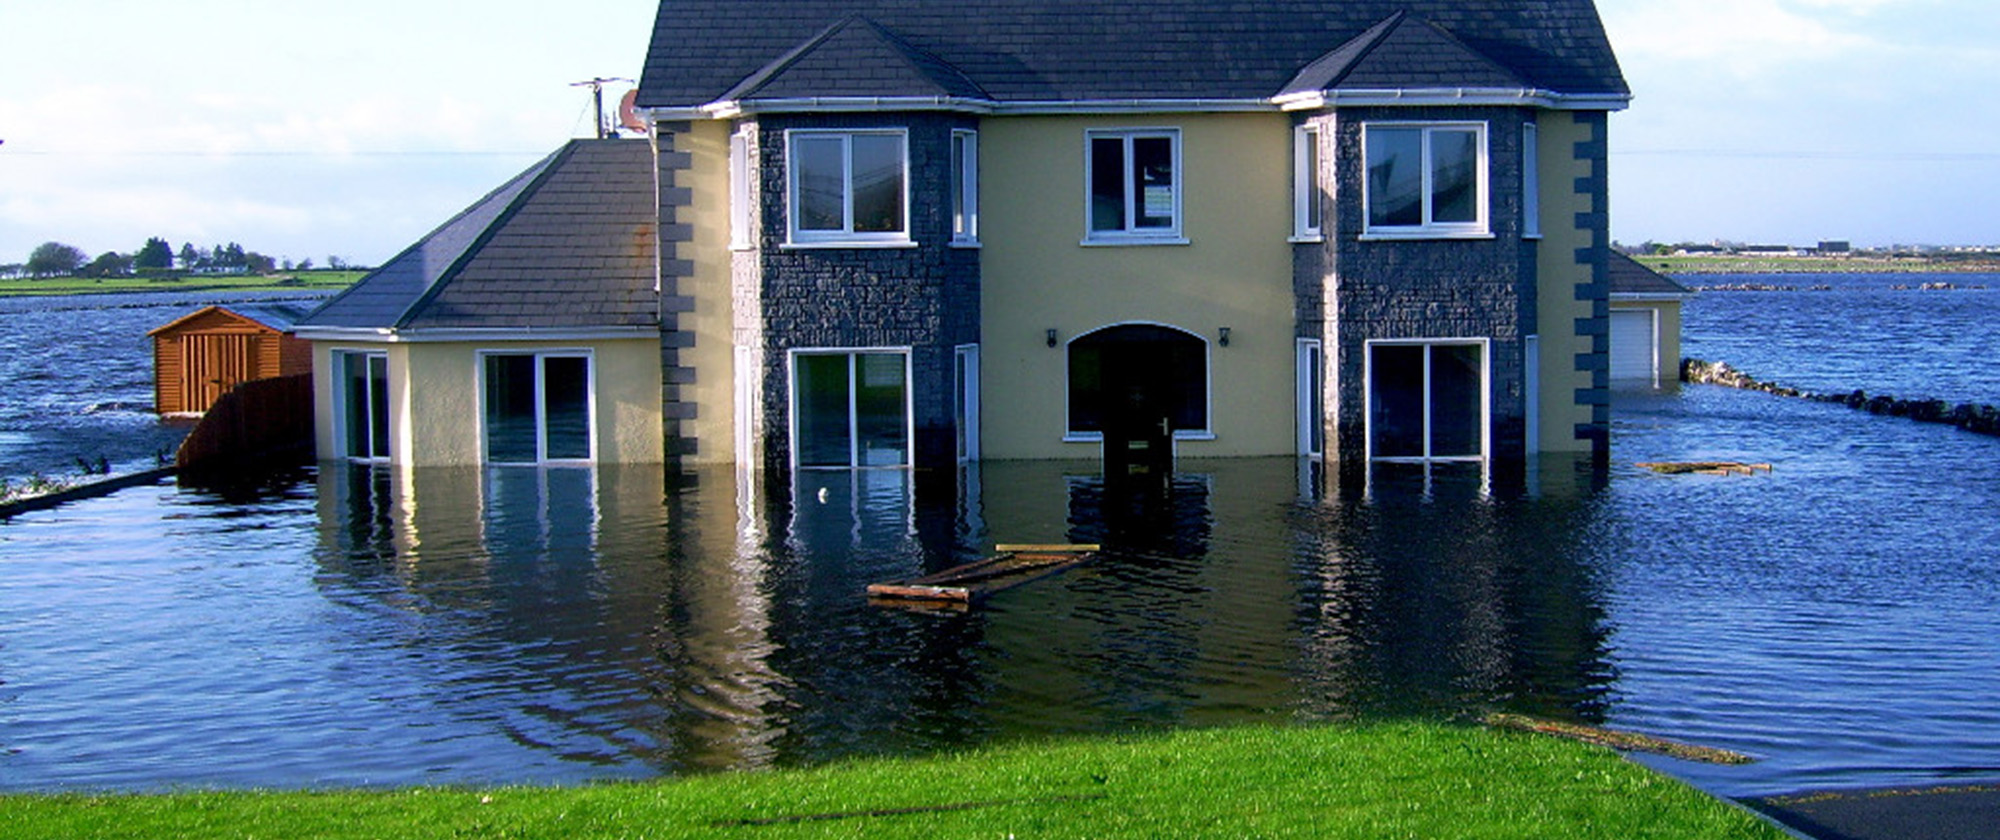 thorough flood damage cleanup can help avoid mold development